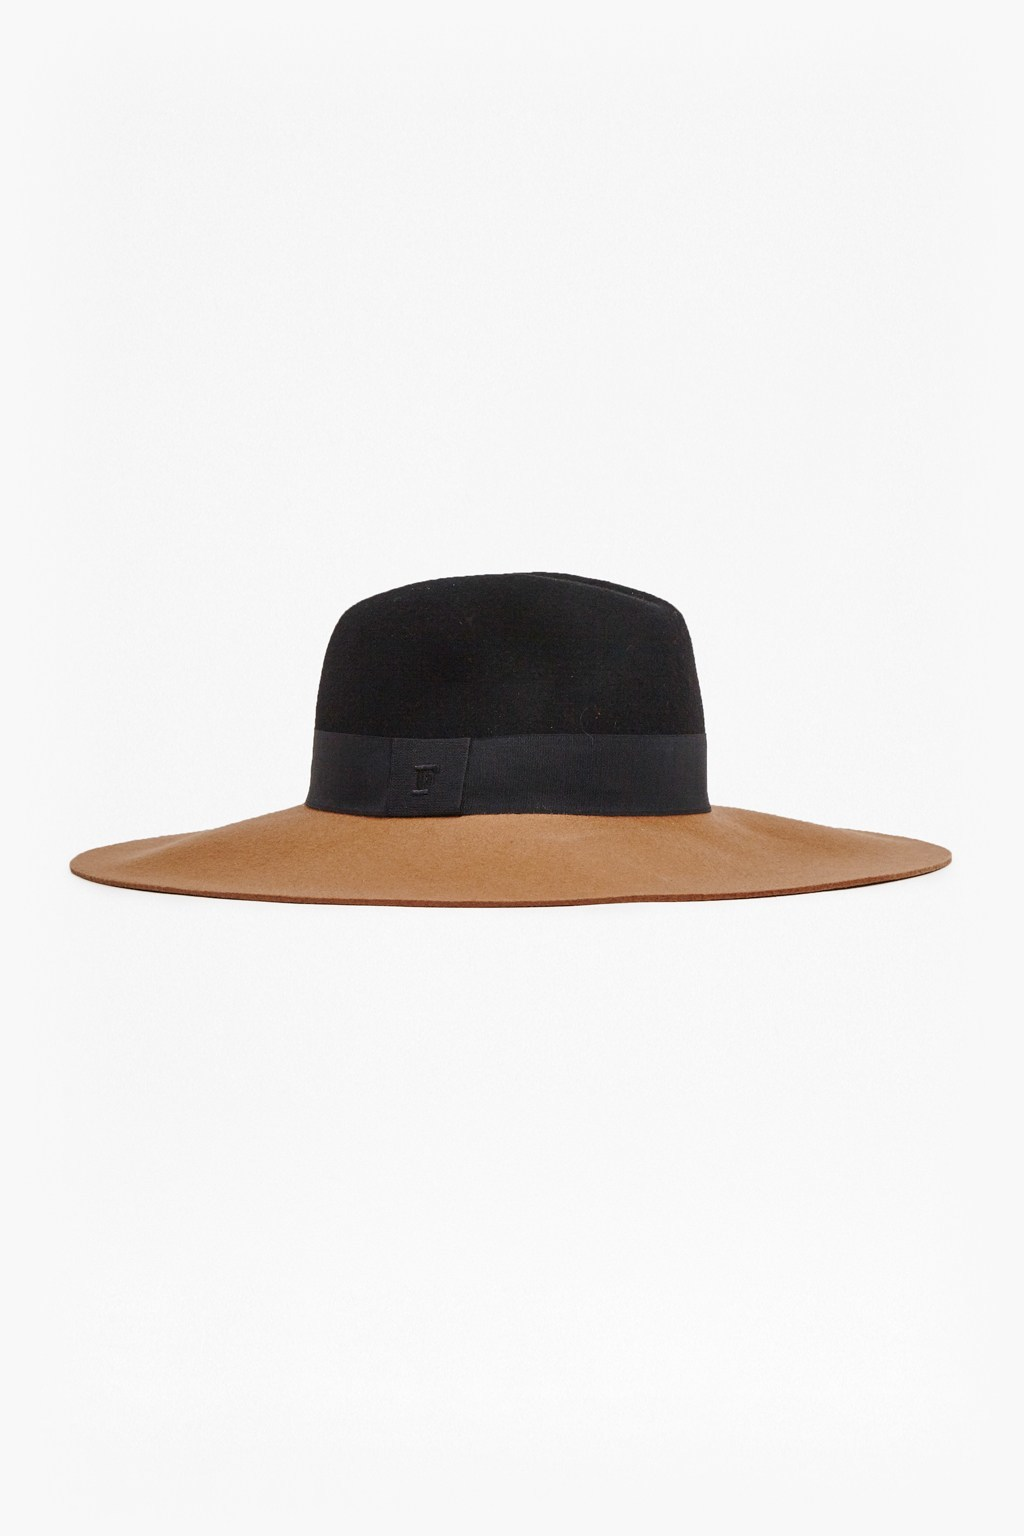 Anita Colour Block Felt Fedora Biker Berry/Black - secondary colour: tan; predominant colour: black; occasions: casual; type of pattern: standard; style: fedora; size: standard; material: felt; pattern: plain; season: a/w 2015; wardrobe: basic